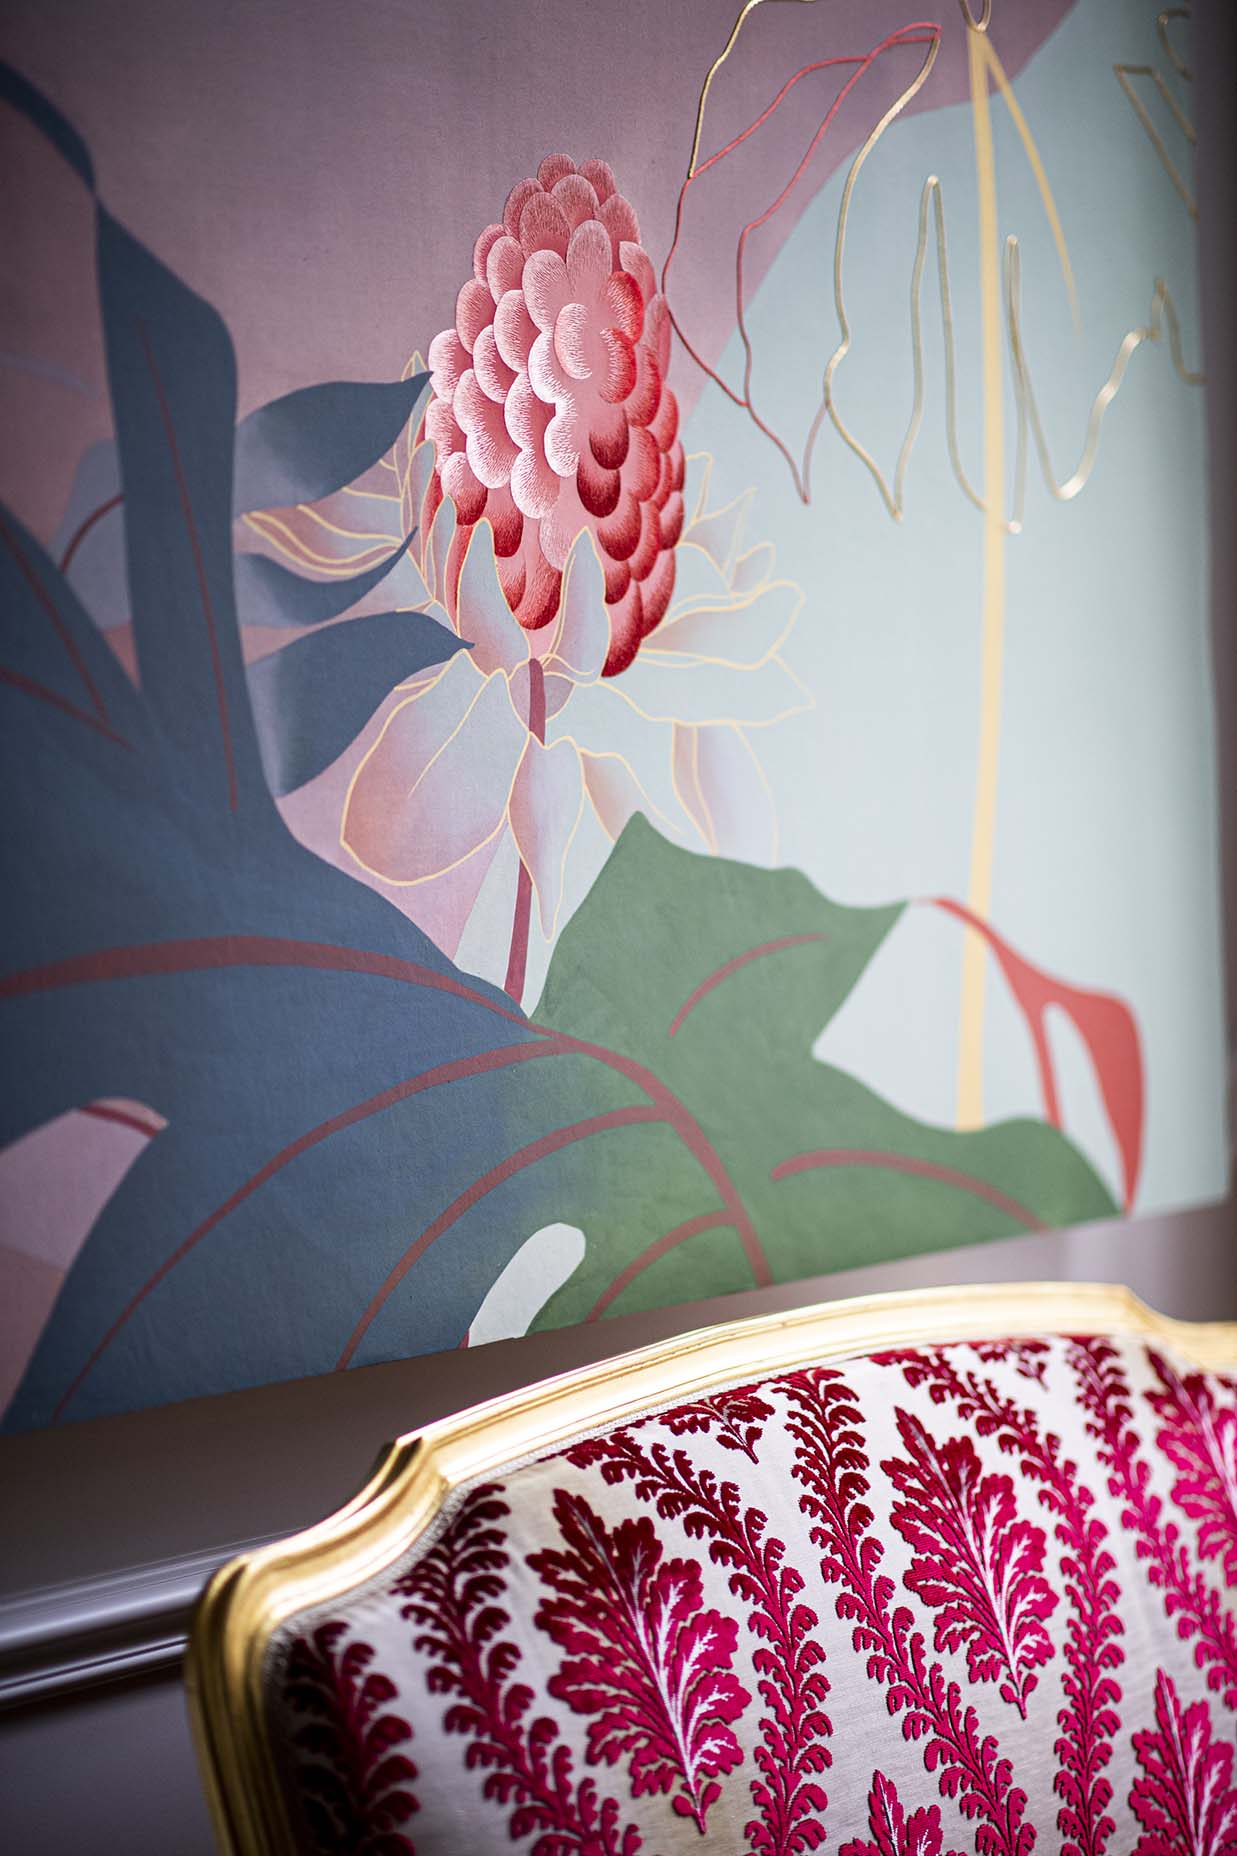 Still life picture by Anne Emmanuellethion Oasi wallpaper with hand painted and embroidery details